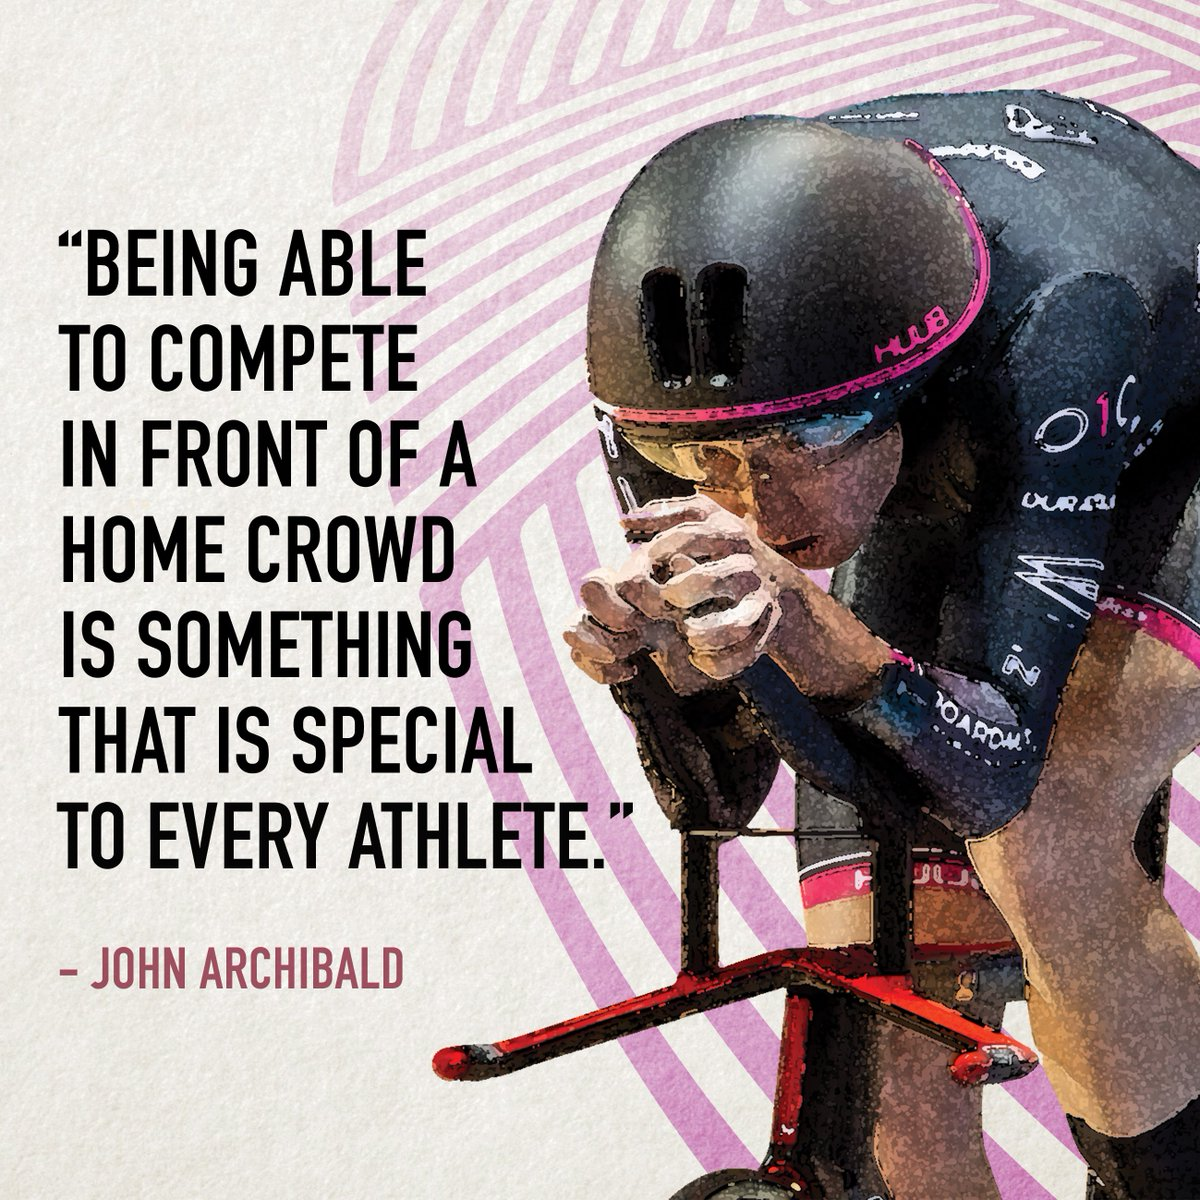 After a blistering season on the track & securing selection for the Track World Championships...  @jjzarchibald is already setting his sights on performing in front of a home crowd at the @TrackWorldCup Glasgow 🇬🇧  Be part of the action ⬇️ http://ticketmaster.co.uk/britishcycling  #NextStopGlasgow